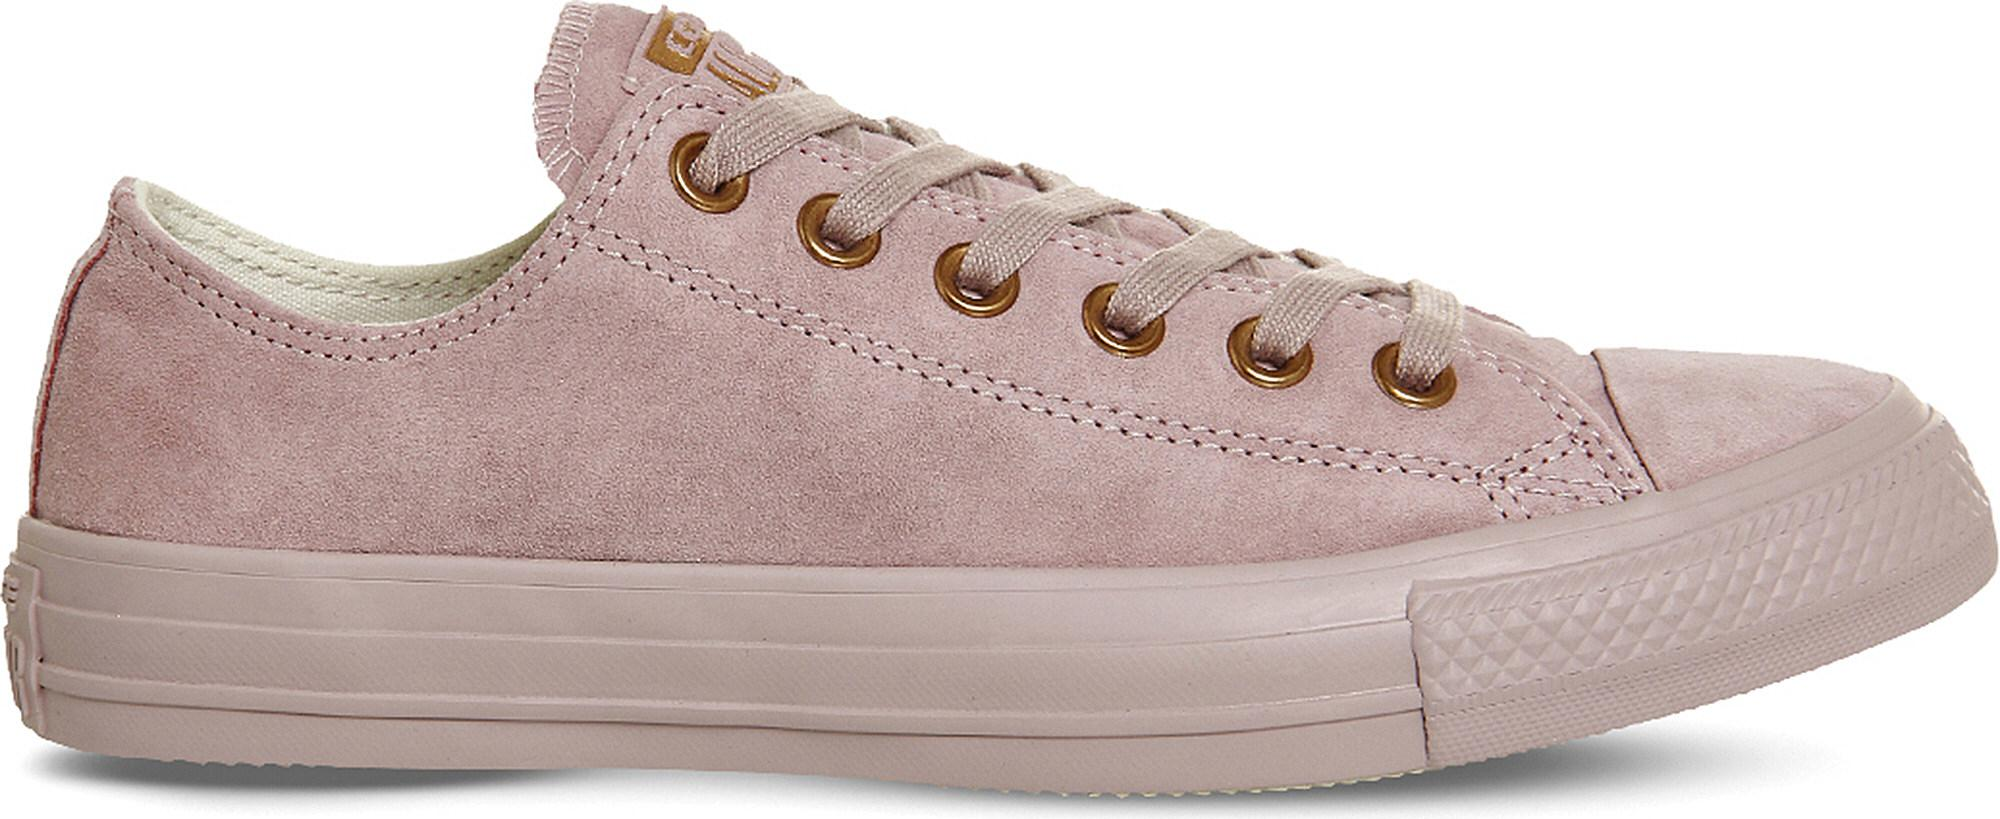 Sneakers in Lilac Rose Gold